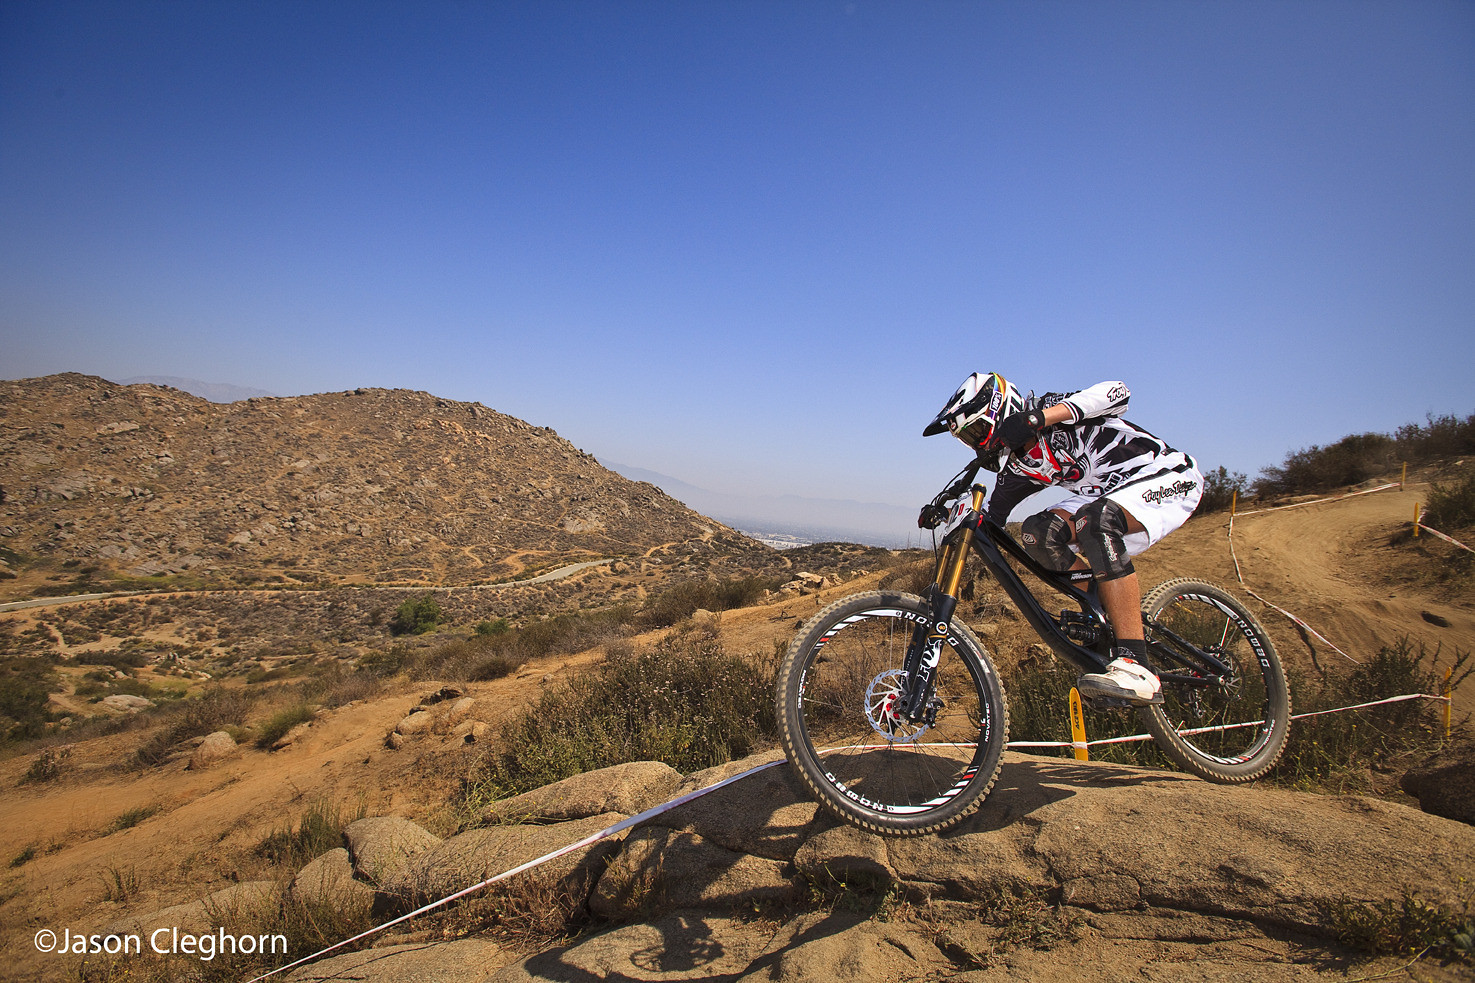 Charlie Harrison - Cleghorn Photography - Mountain Biking Pictures - Vital MTB